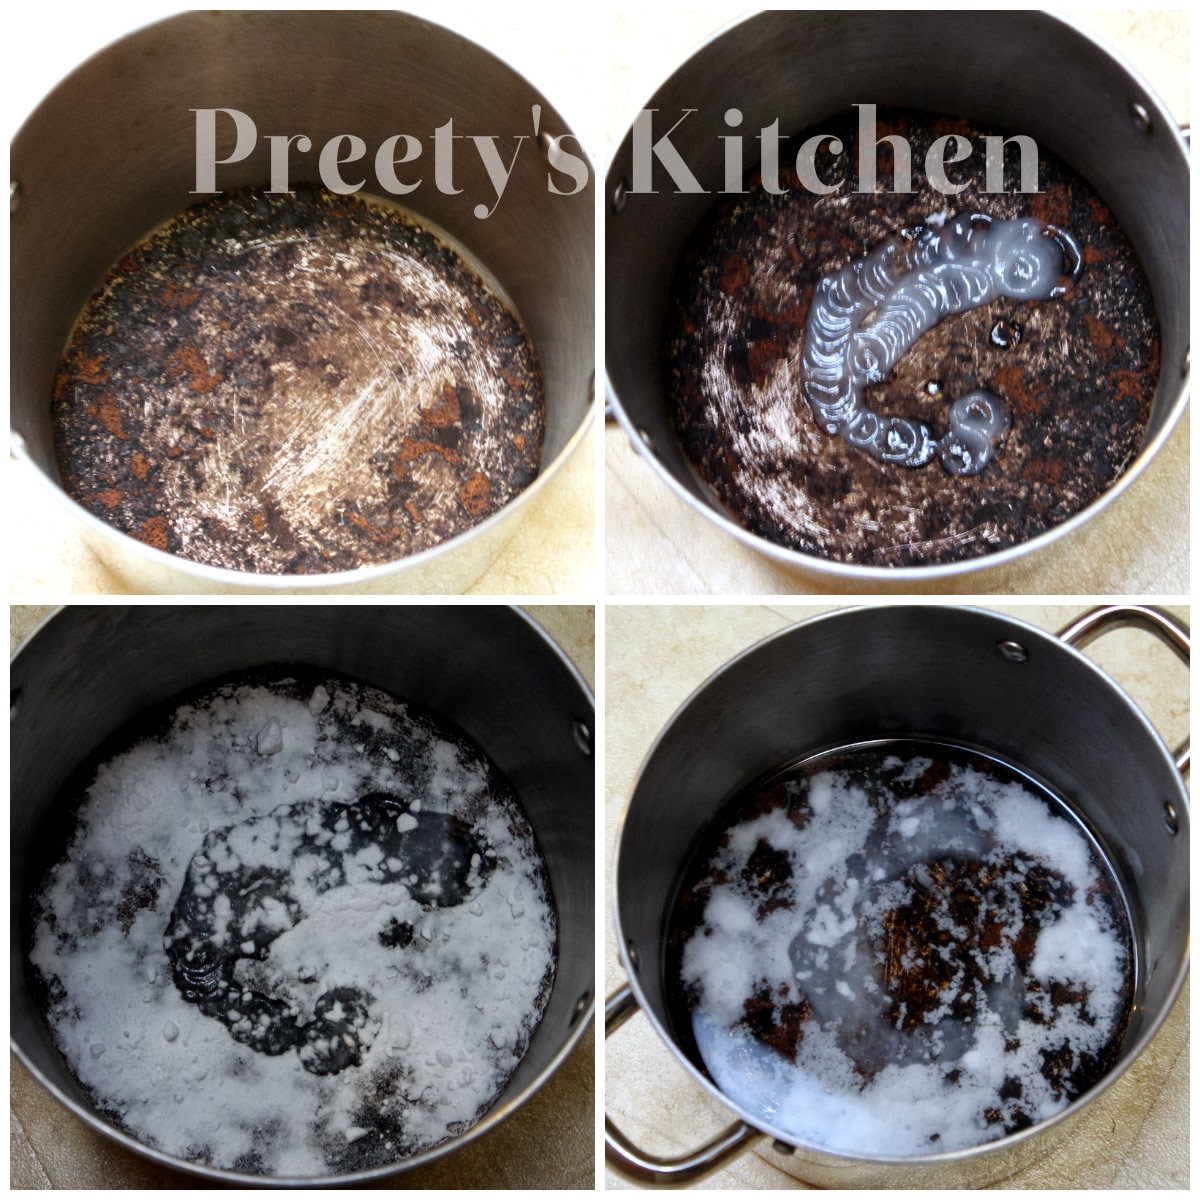 How to wash a burnt pan with improvised means 3